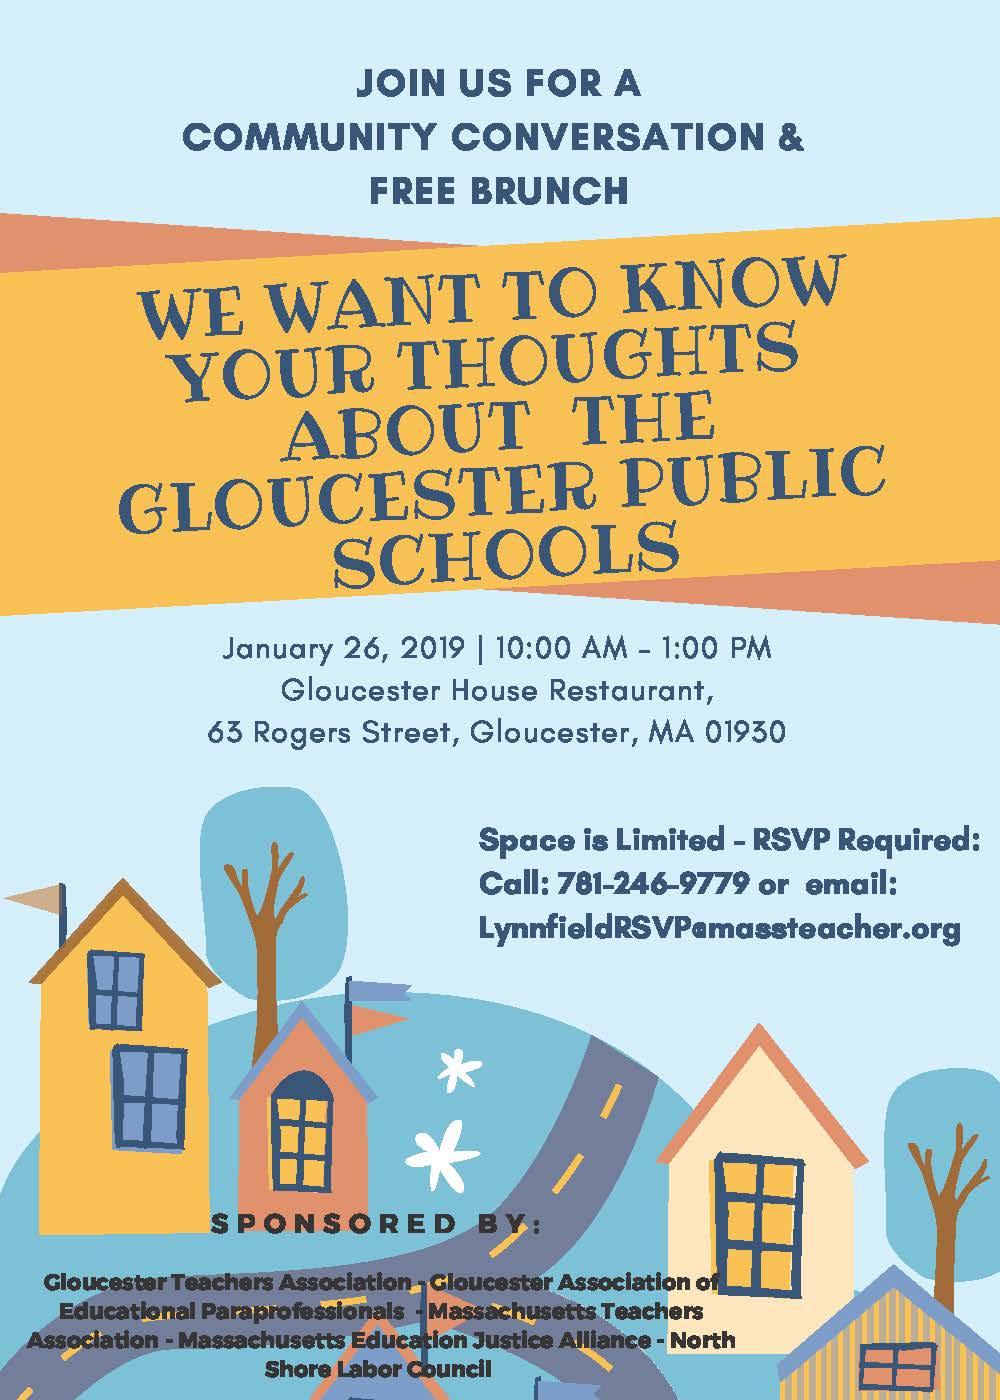 Image Description: Gloucester Teachers Association We Want to Know your Thoughts about the Gloucester Public Schools. Space is Limited RSVP required 781-246-9779 or LynnfieldRSVP@massteacher.org